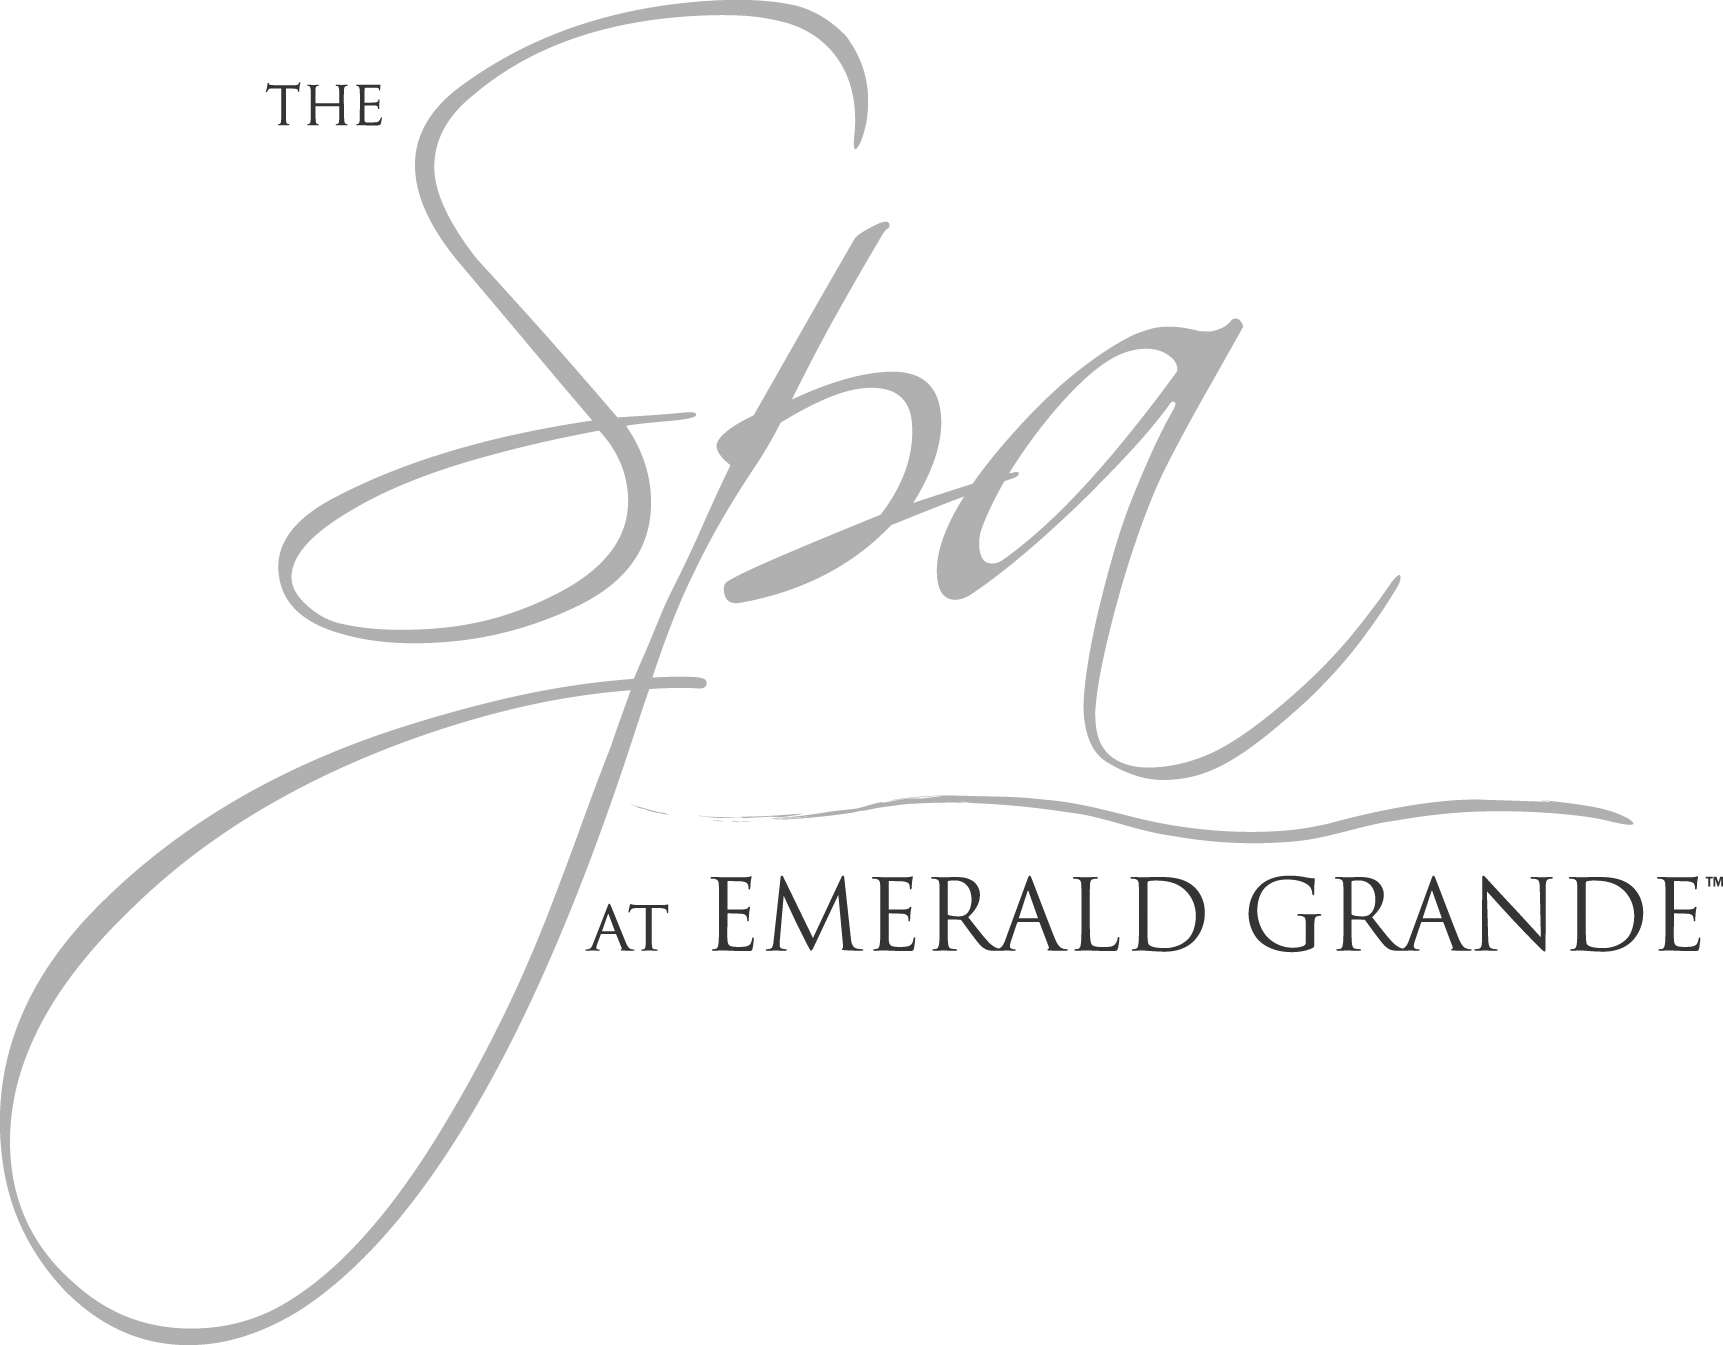 The Spa at Emerald Grande